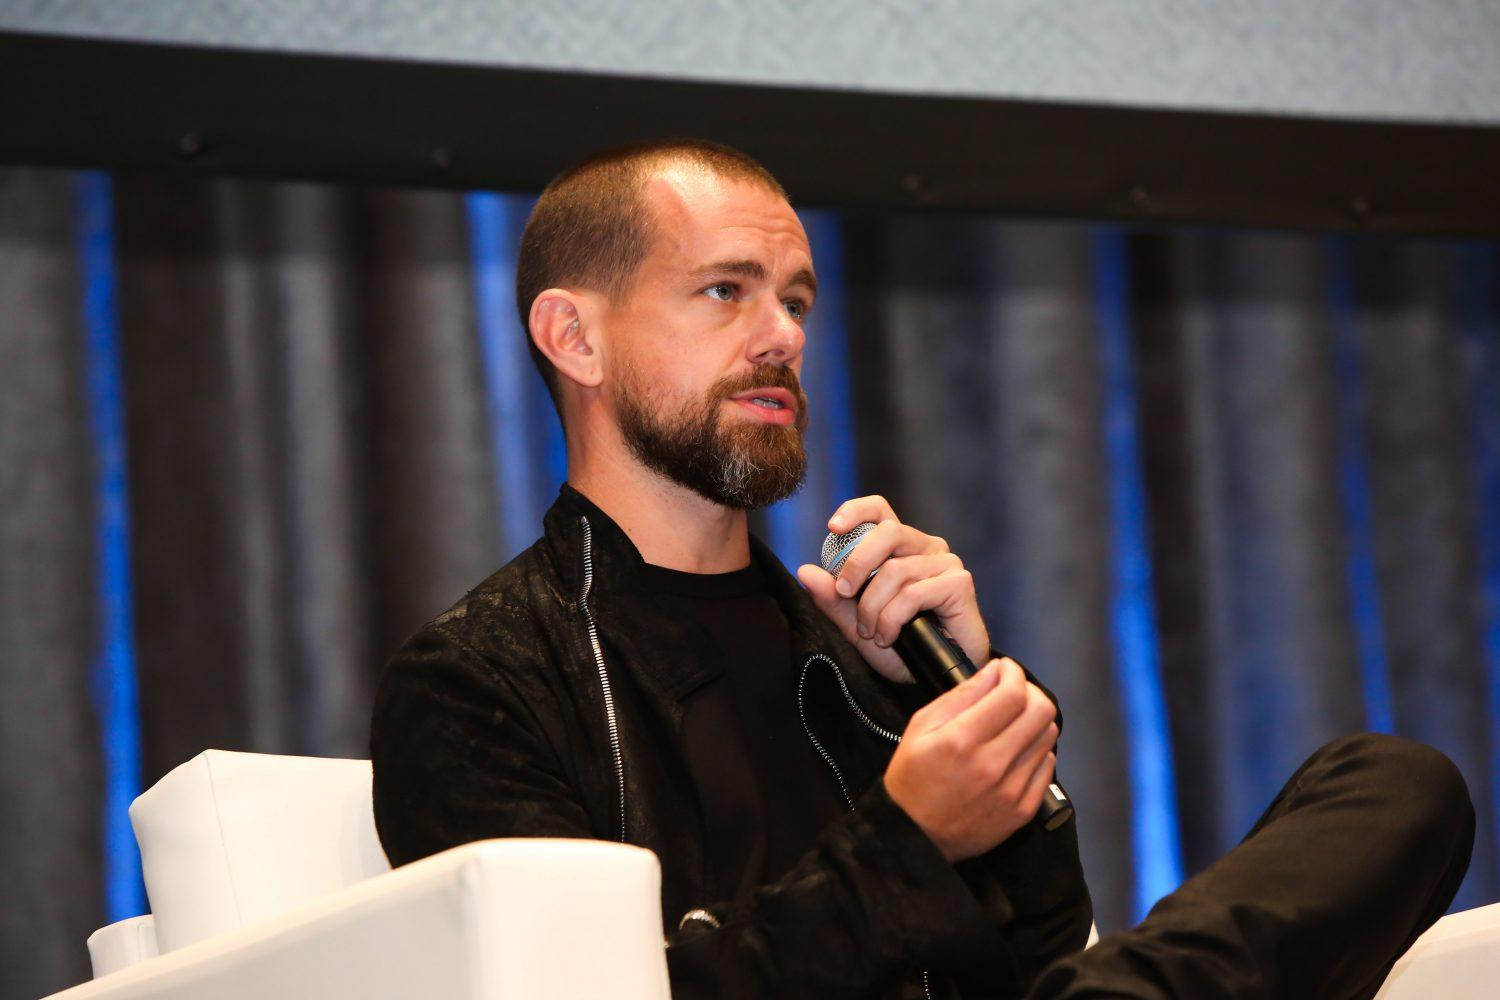 Square Puts 1% of Total Assets in Bitcoin in Surprise $50M Investment